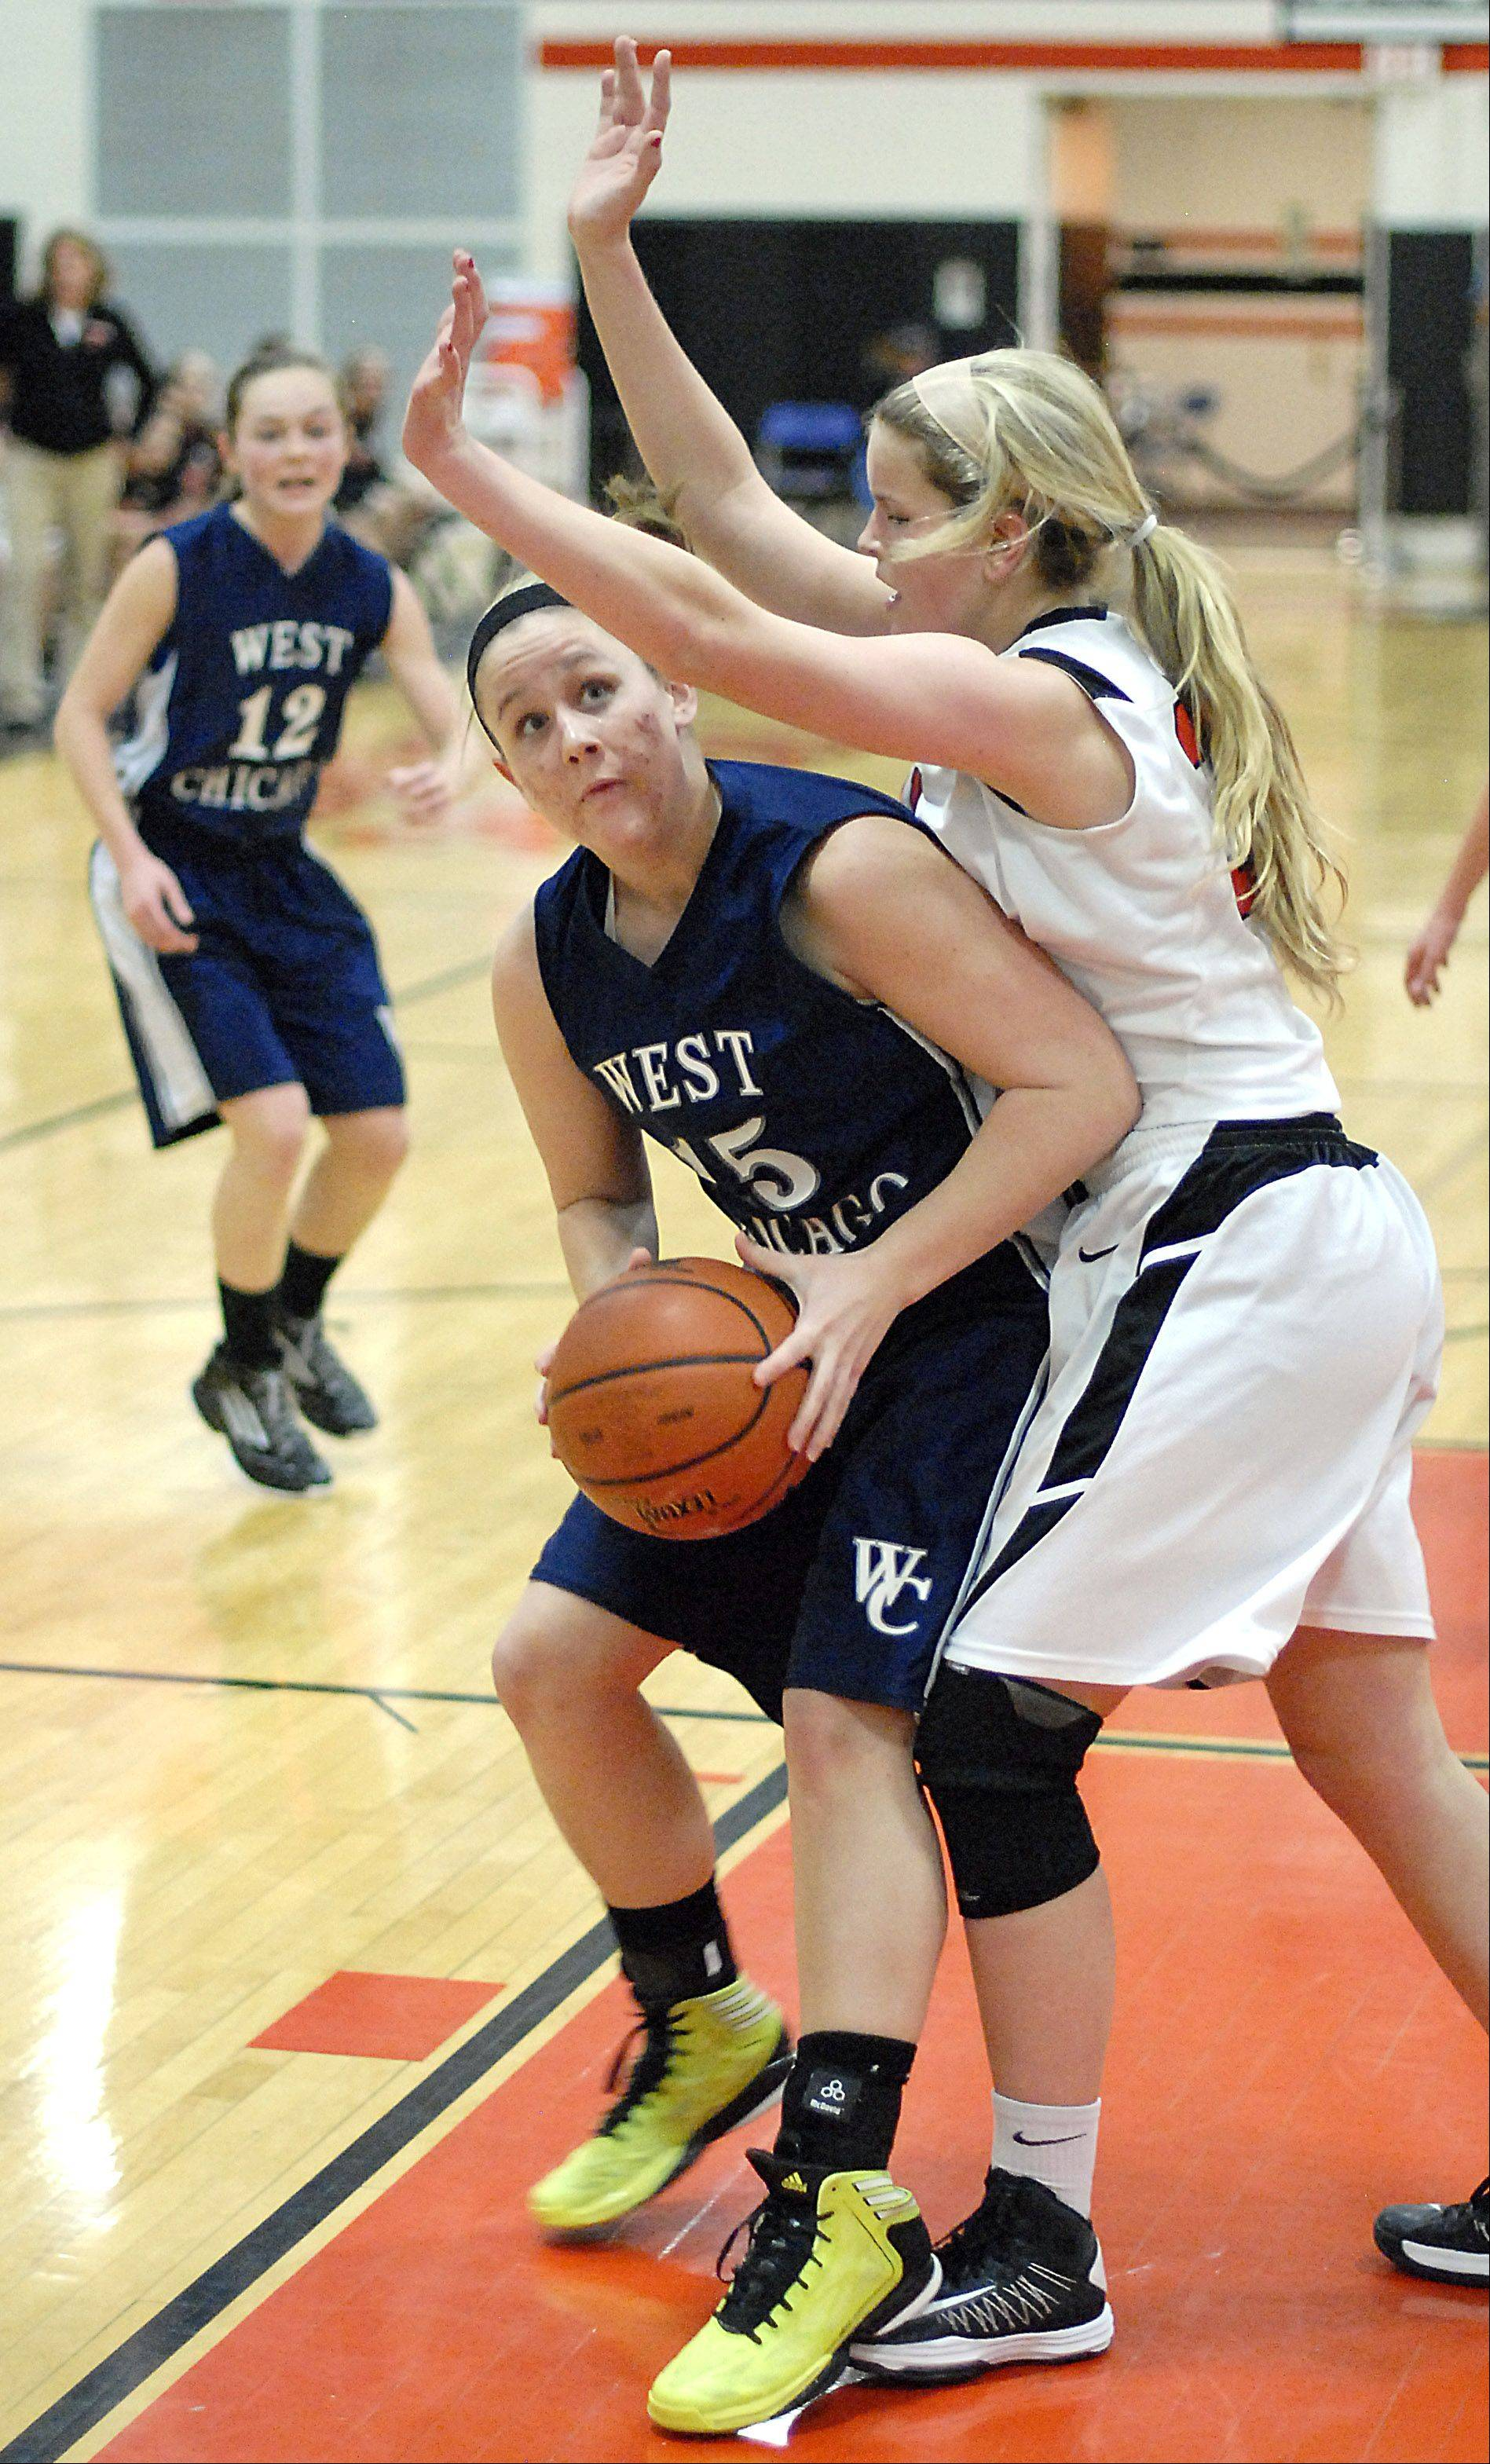 West Chicago's Kylee Gunderson looks to the hoop for a shot against the defense of St. Charles East's Hannah Nowling .